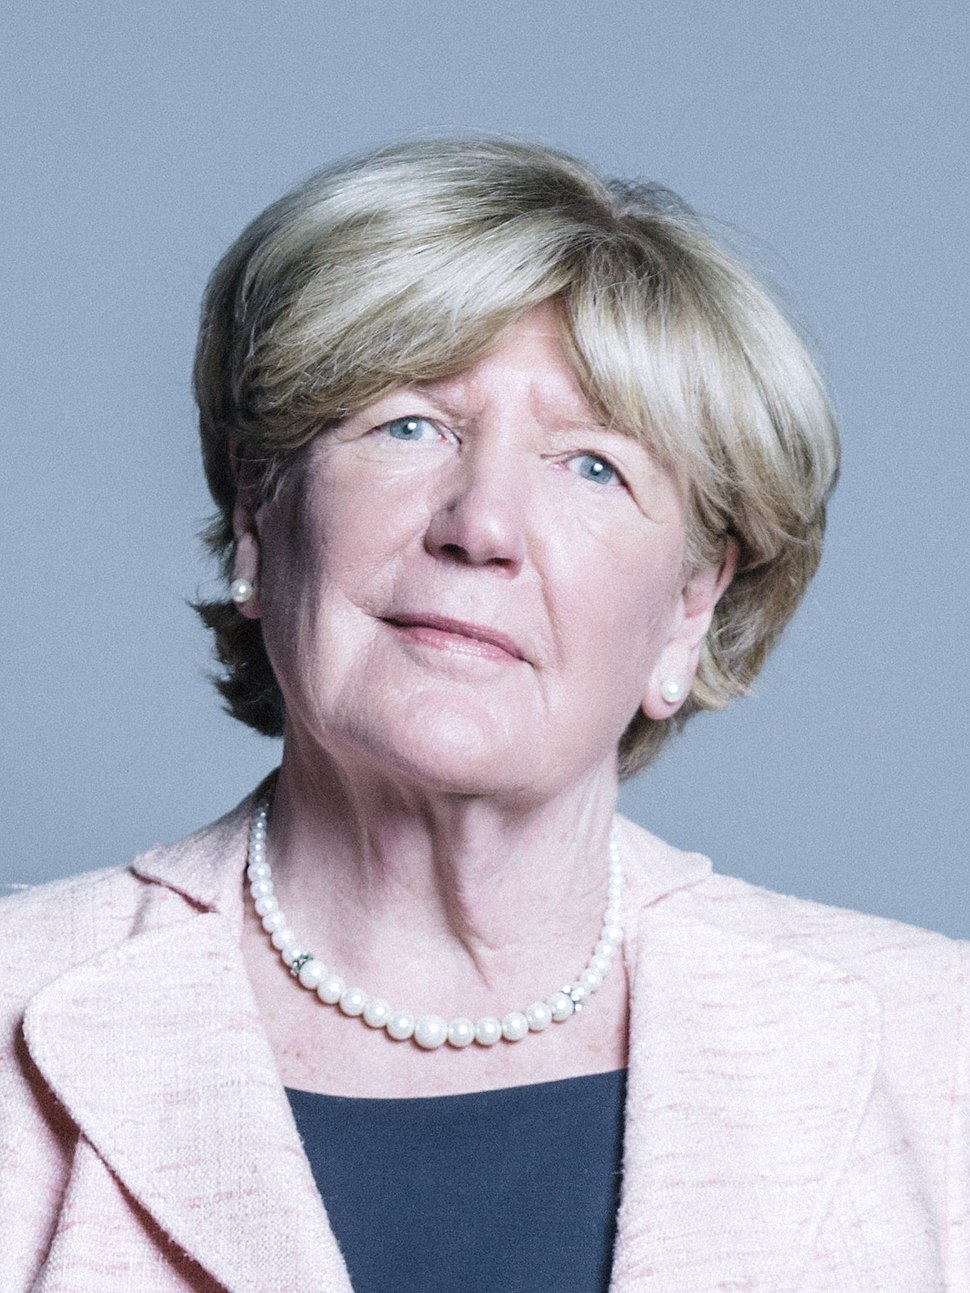 Official portrait of Baroness Taylor of Bolton crop 2